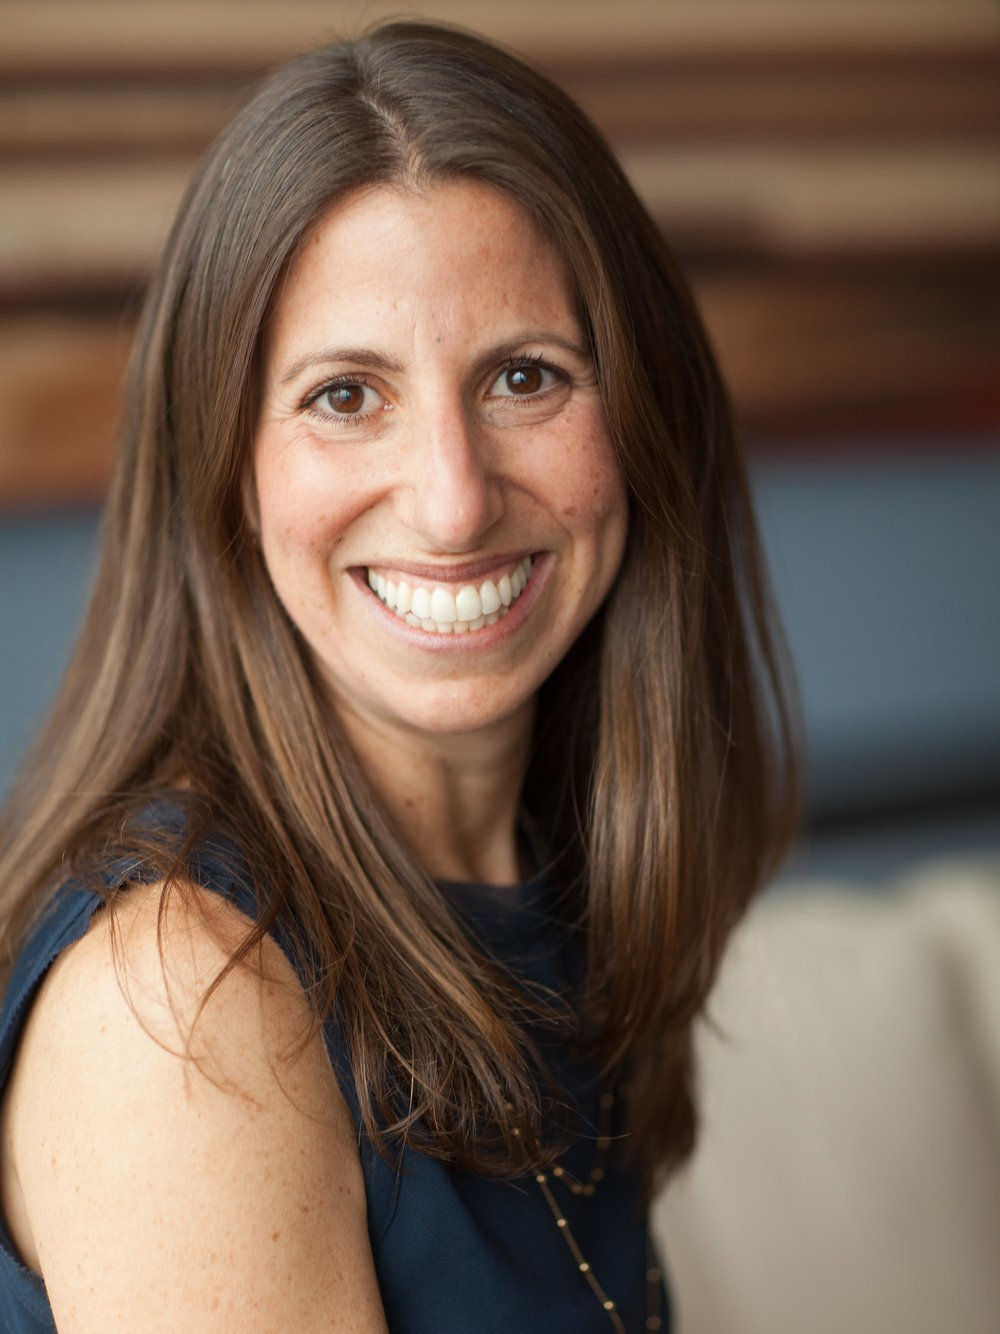 Susan Daimler - Susan Daimler is the general manager of StreetEasy overseeing all strategy, marketing, sales and customer operations for the company. Susan joined StreetEasy as a part of the company's acquisition by Zillow in August 2013. She joined Zillow in October 2012 after Zillow acquired Buyfolio, a co-shopping platform for real estate agents and their homebuyers, which she co-founded in 2009. Prior to Buyfolio, Susan co-founded the award-winning travel website SeatGuru, which was sold to Expedia in 2007. She has a bachelor's in English from Johns Hopkins University and currently sits on their Board of Trustees.